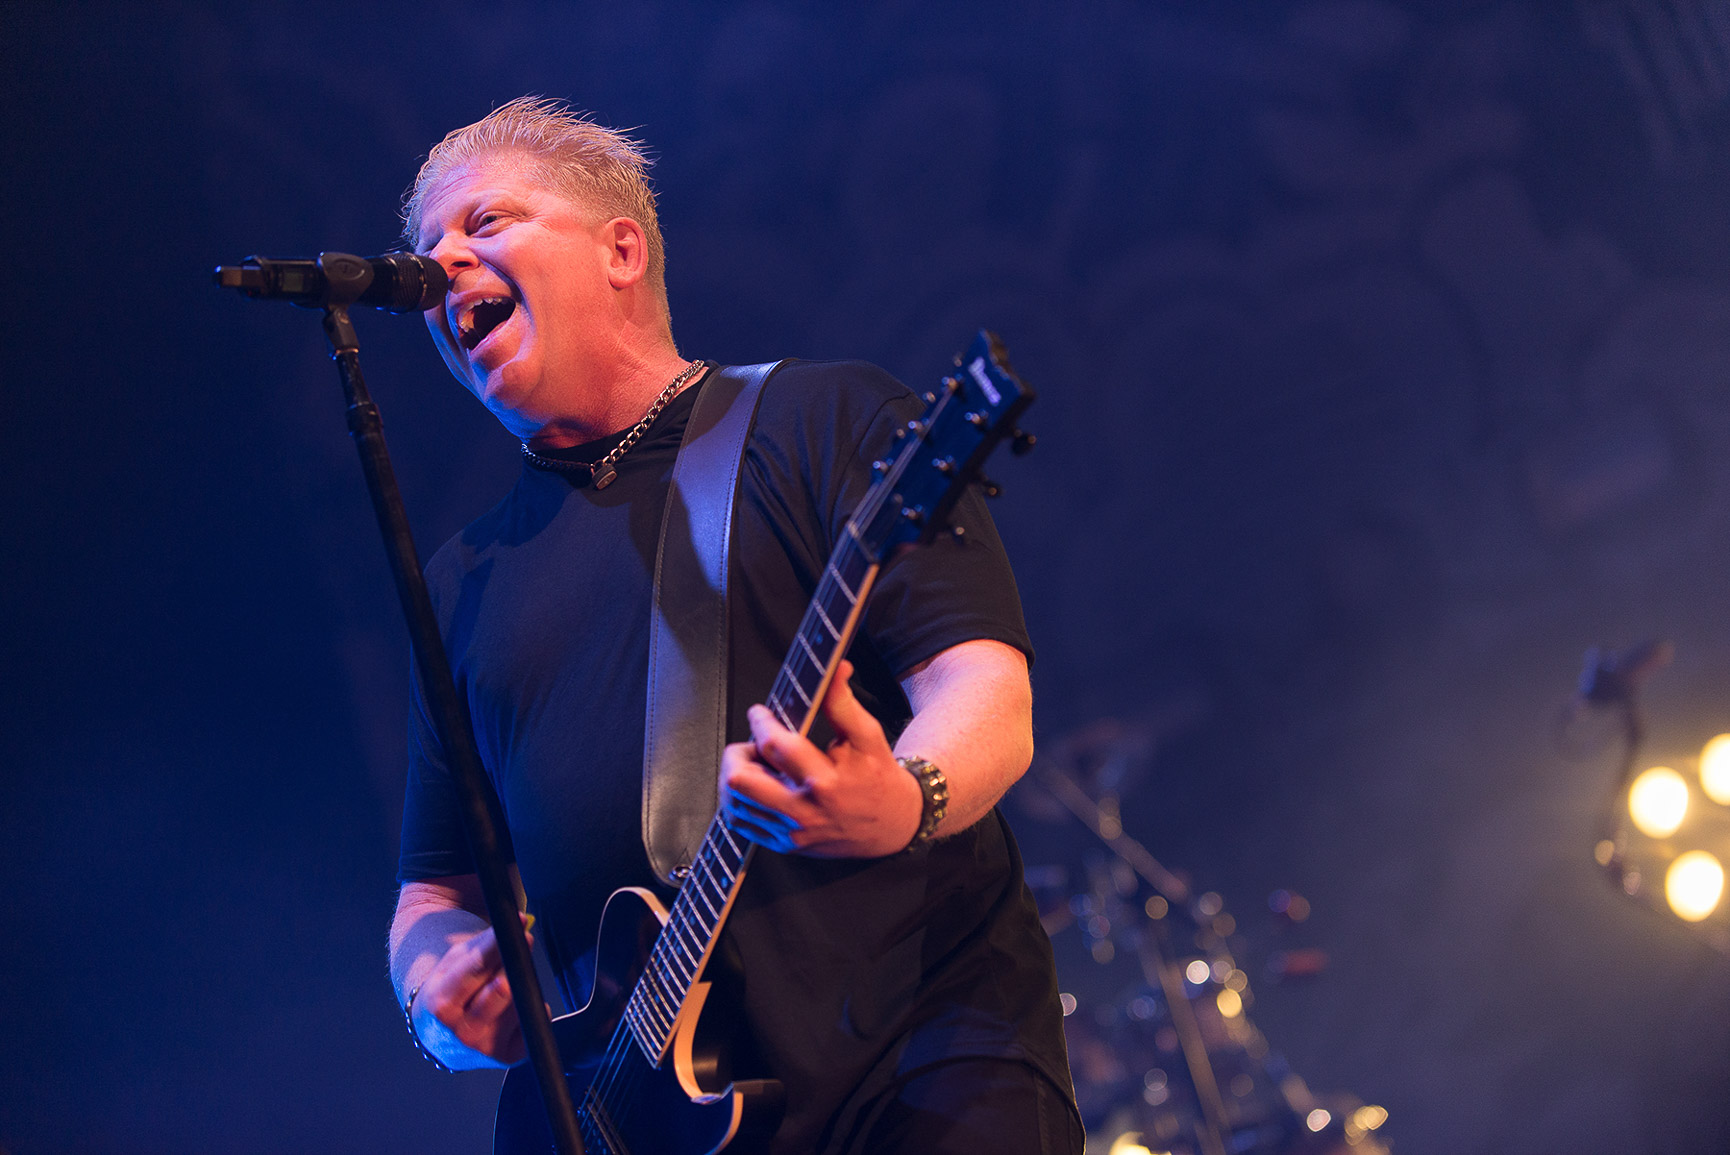 The Offspring: lindo momento frente al caos